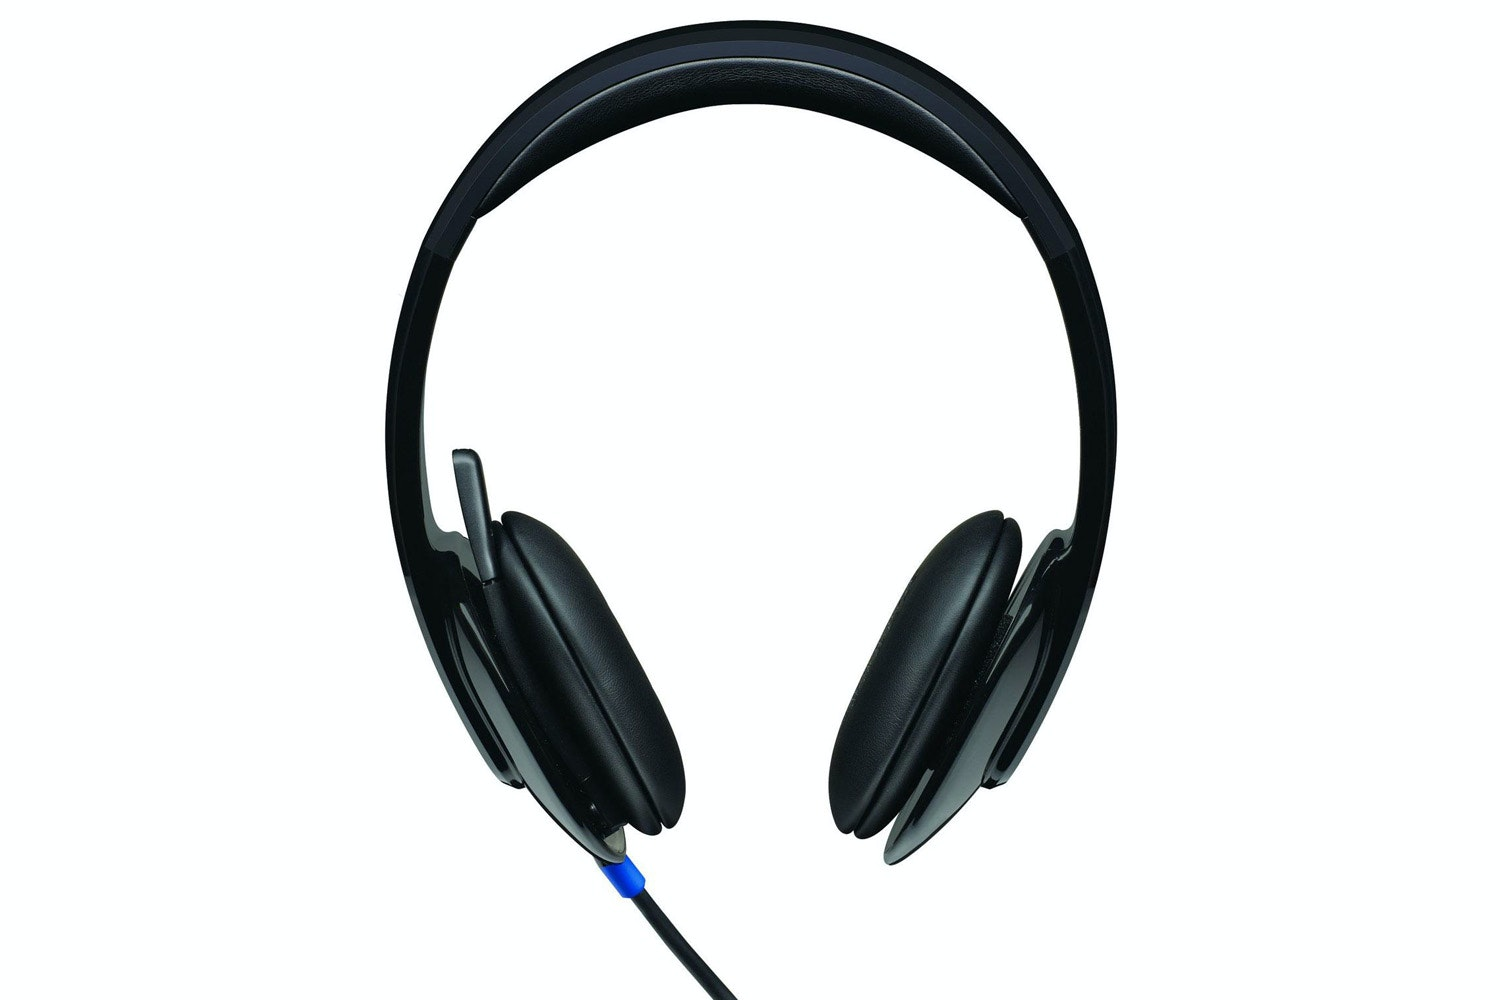 Logitech H540 USB Headphones | Black